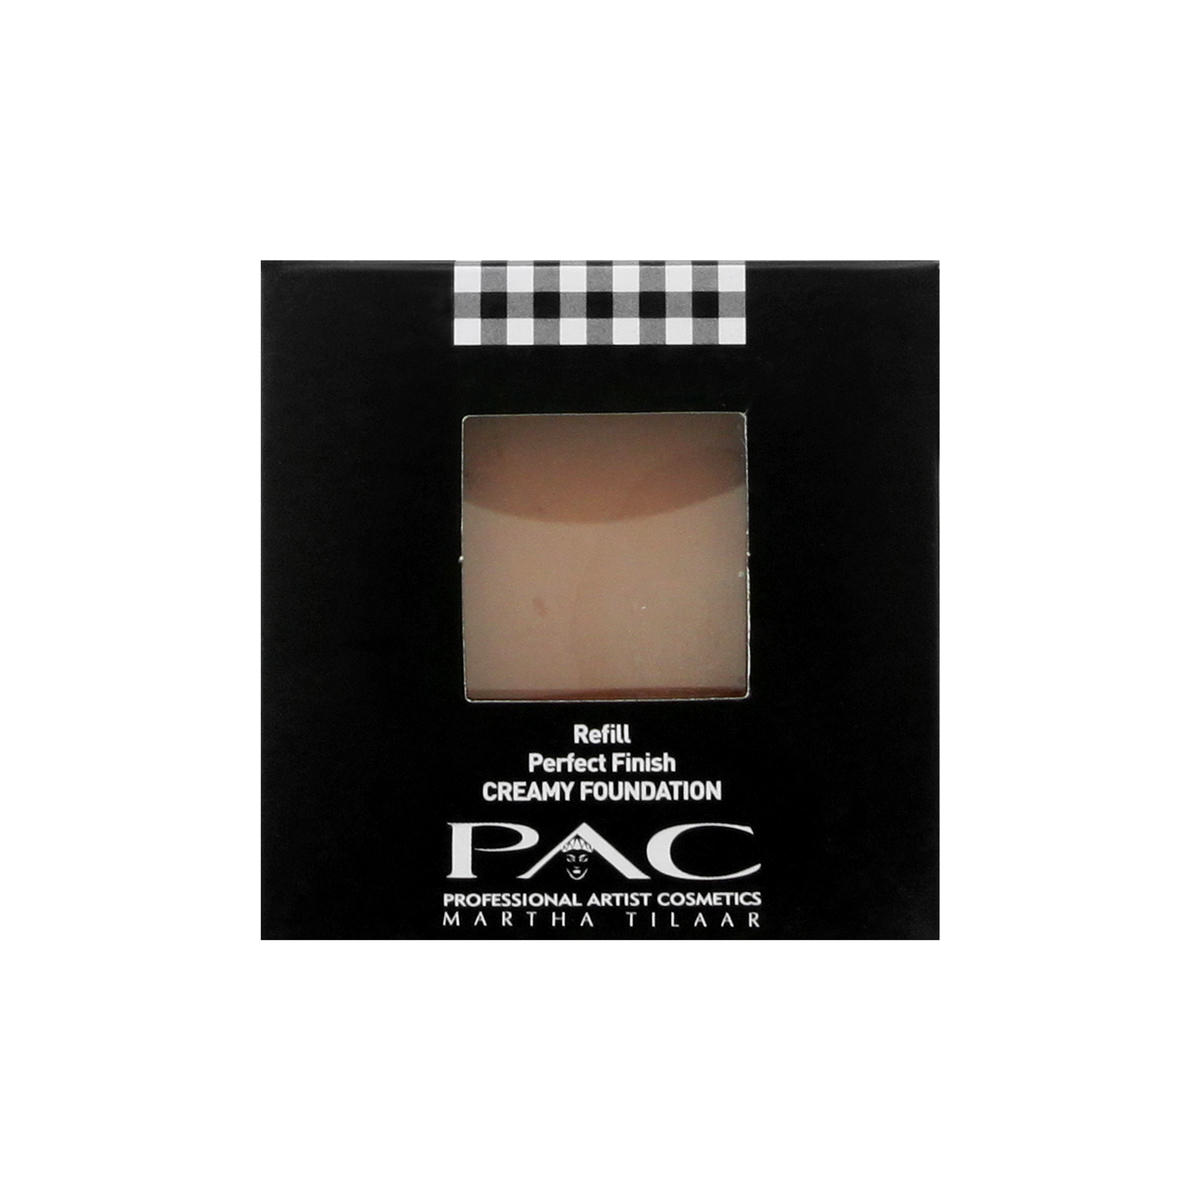 PAC-Perfect-Finish-Creamy-Foundation-Refill-Edited-P-sfw